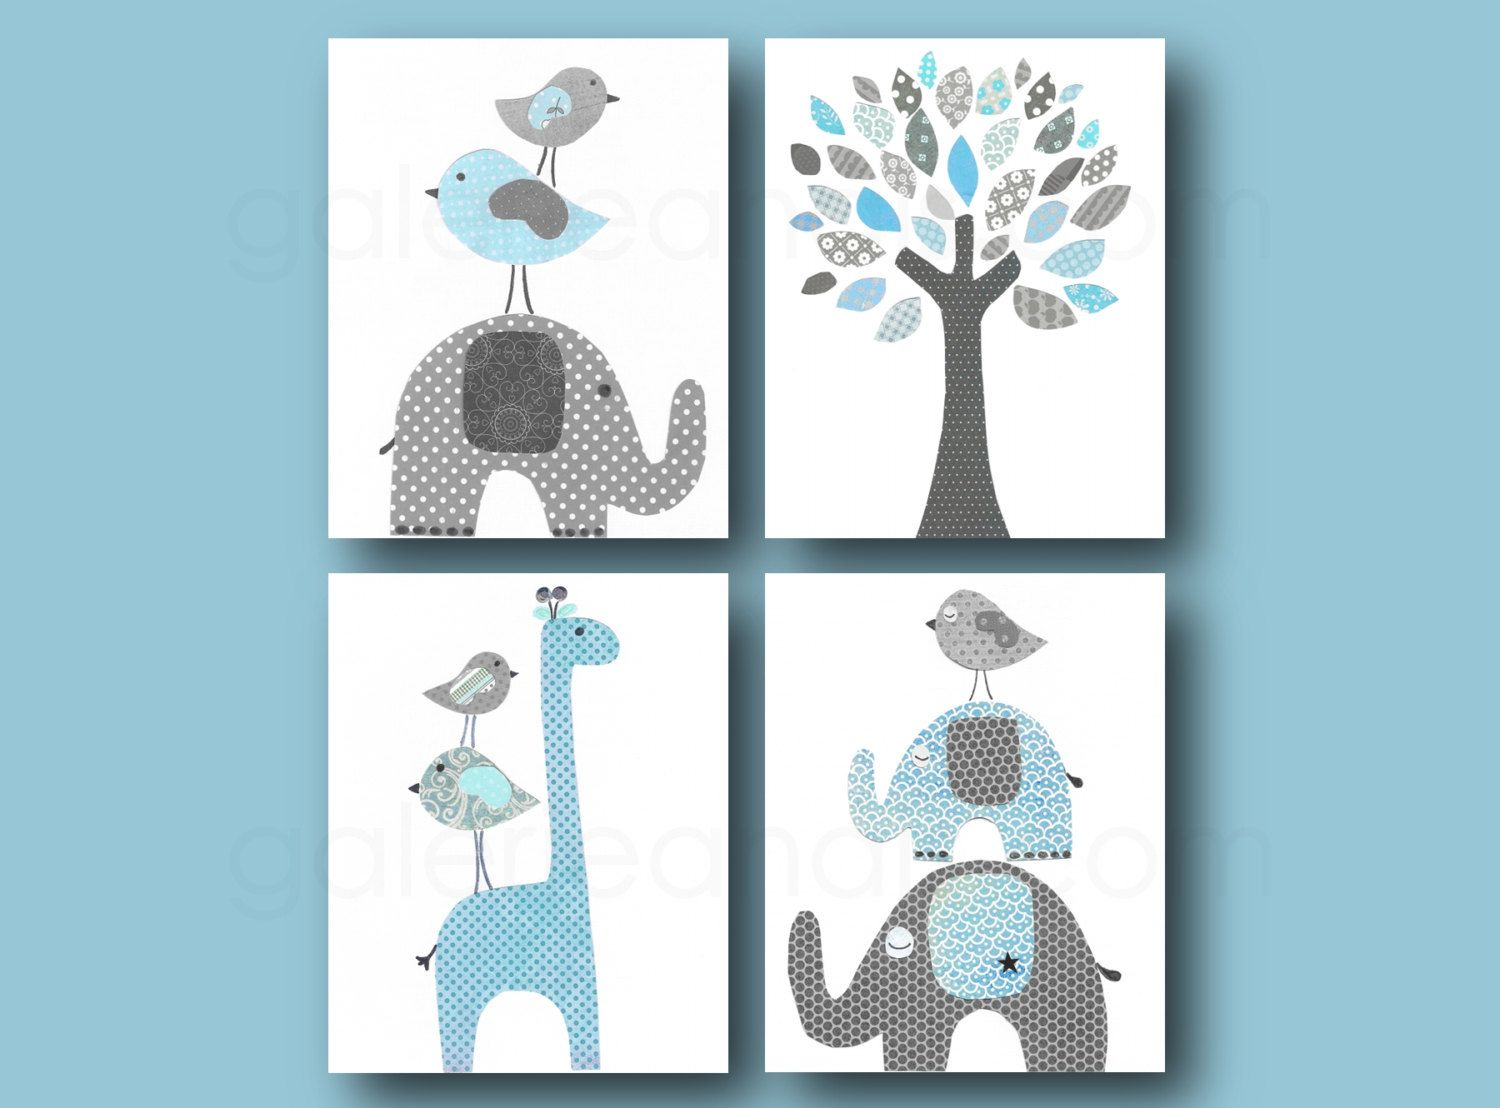 Elephant nursery wall art print mom baby dad by rizzleandrugee - Blue And Gray Elephant Nursery Giraffe Nursery Wall Art Kids Room Baby Nursery Children Art Tree Nursery Set Of Four Prints Galerieanais By Galerieanais On